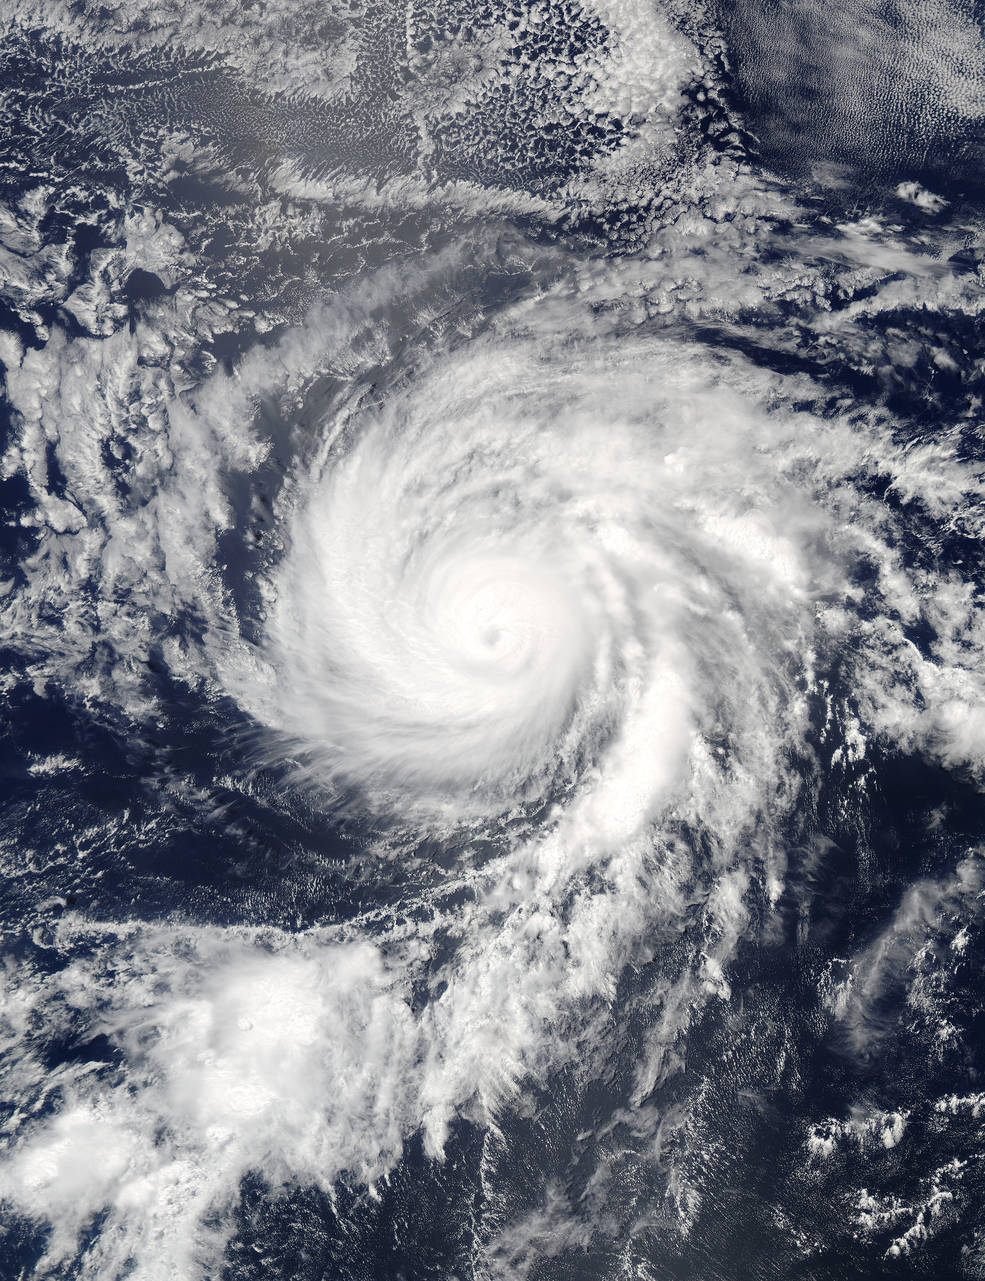 satellite view of hurricane over ocean